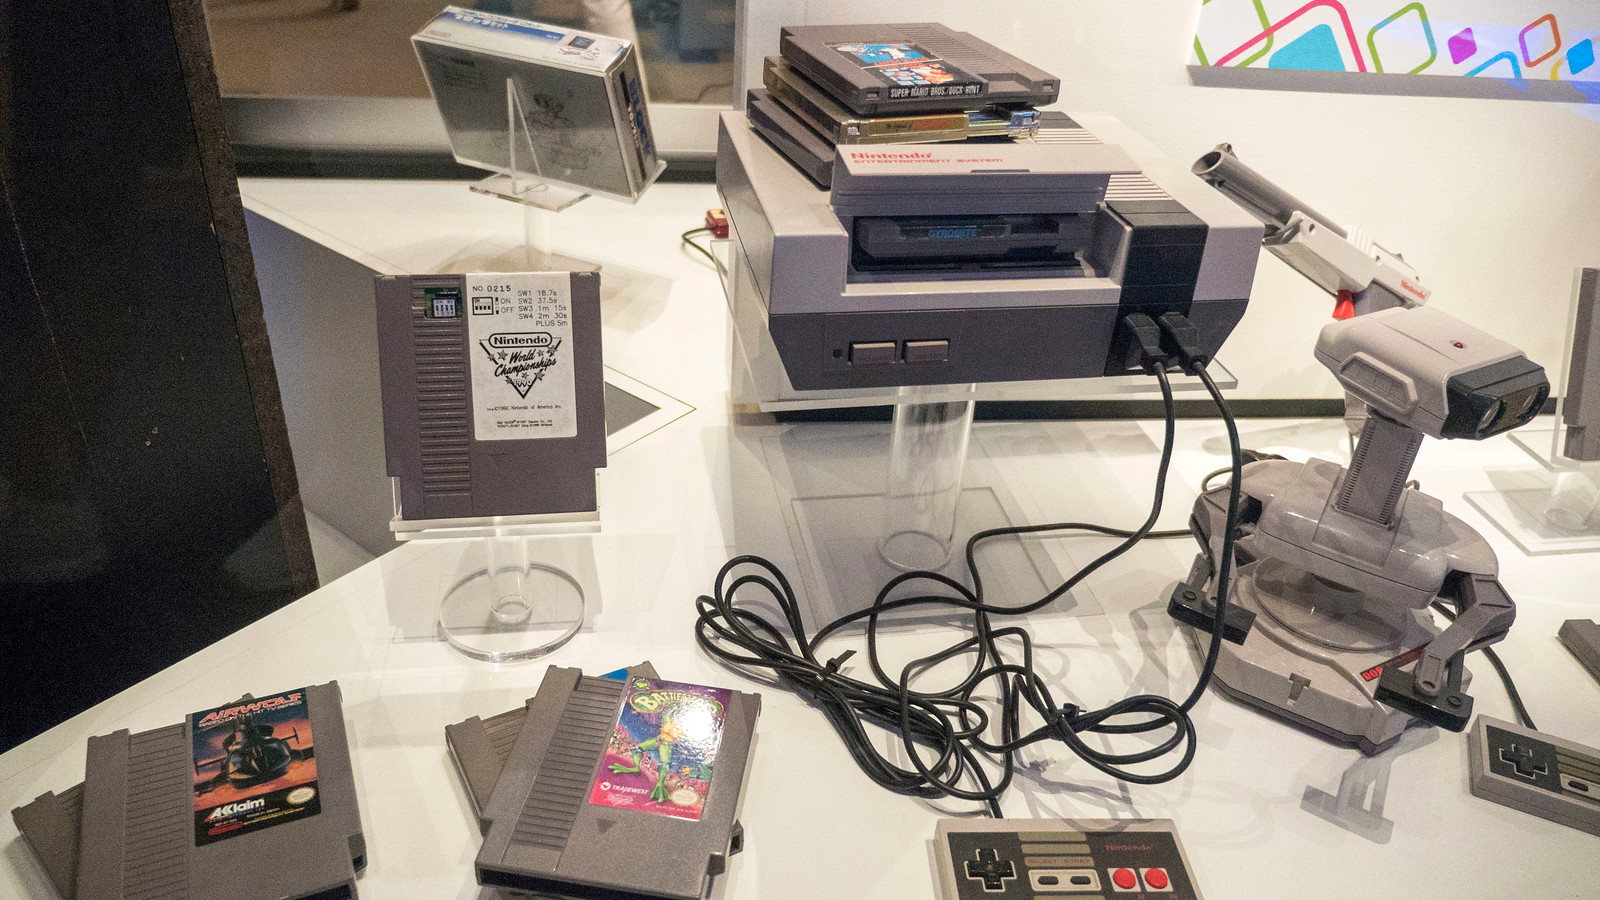 NES Nintendo Display, including the Nintendo World Championships cartridge. Why the Strong Museum is Thrilling for Video Game Lovers